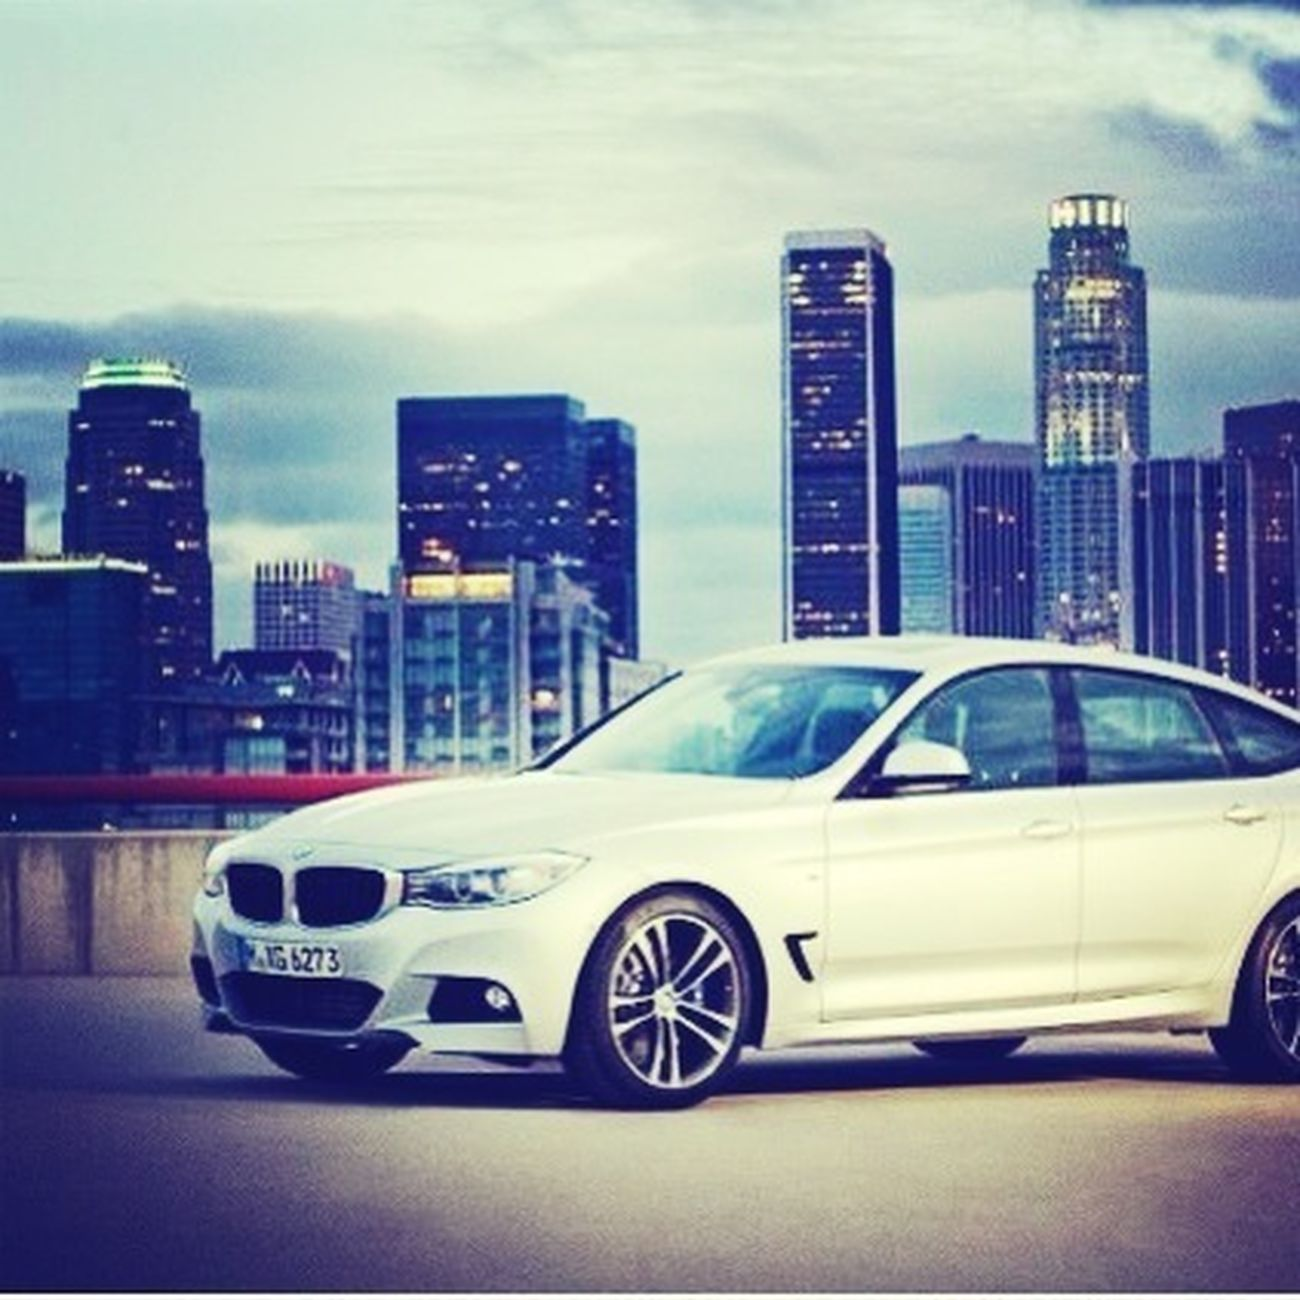 #BMW #3 Series Gt #2013 #sik #twin Turbo Sports